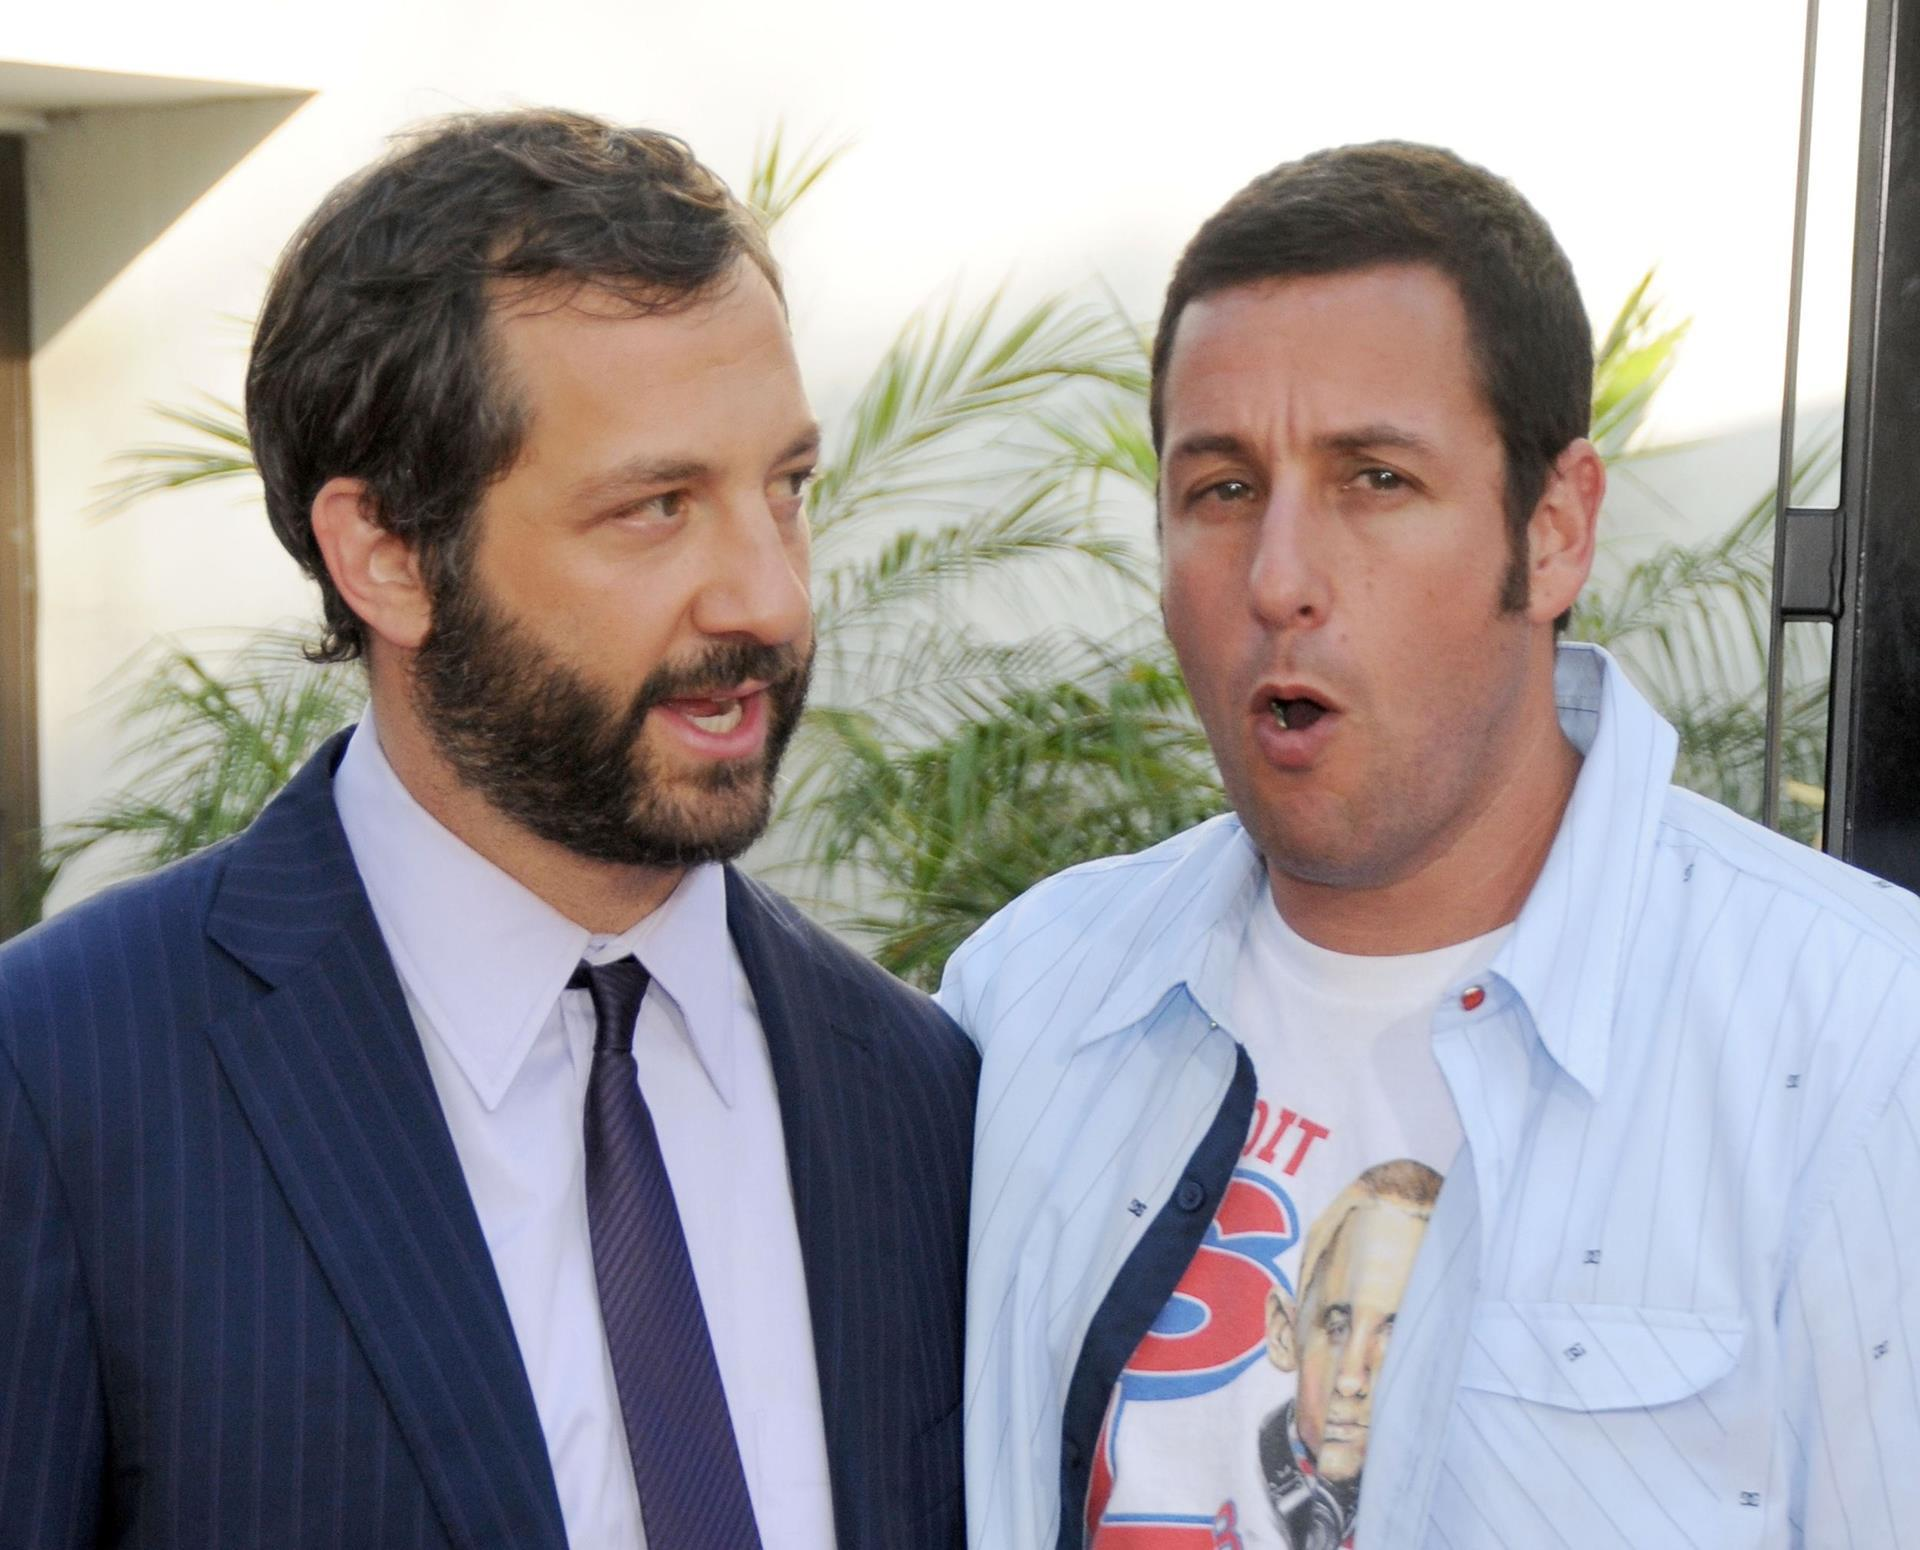 Adam sandler bad boyfriend lyrics